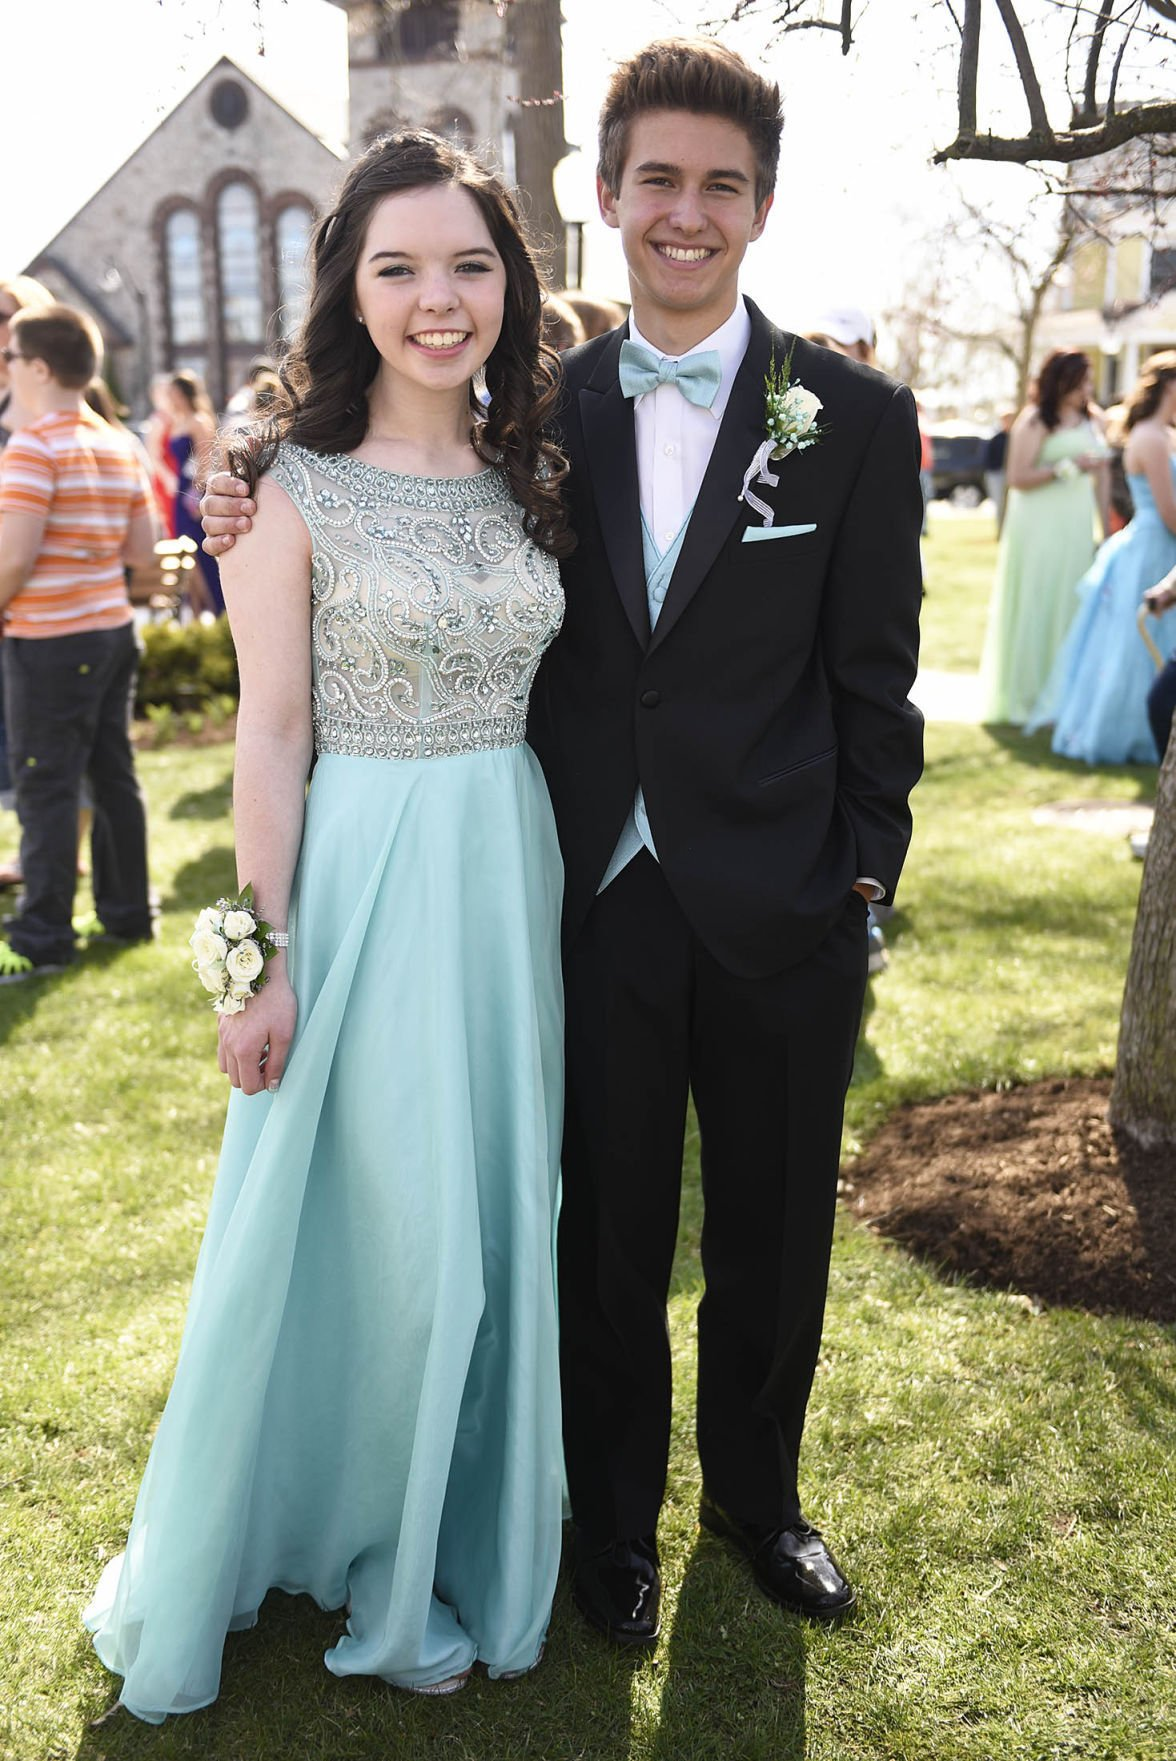 Beautiful Camo Prom Dress And Tux Mold - Wedding Plan Ideas ...